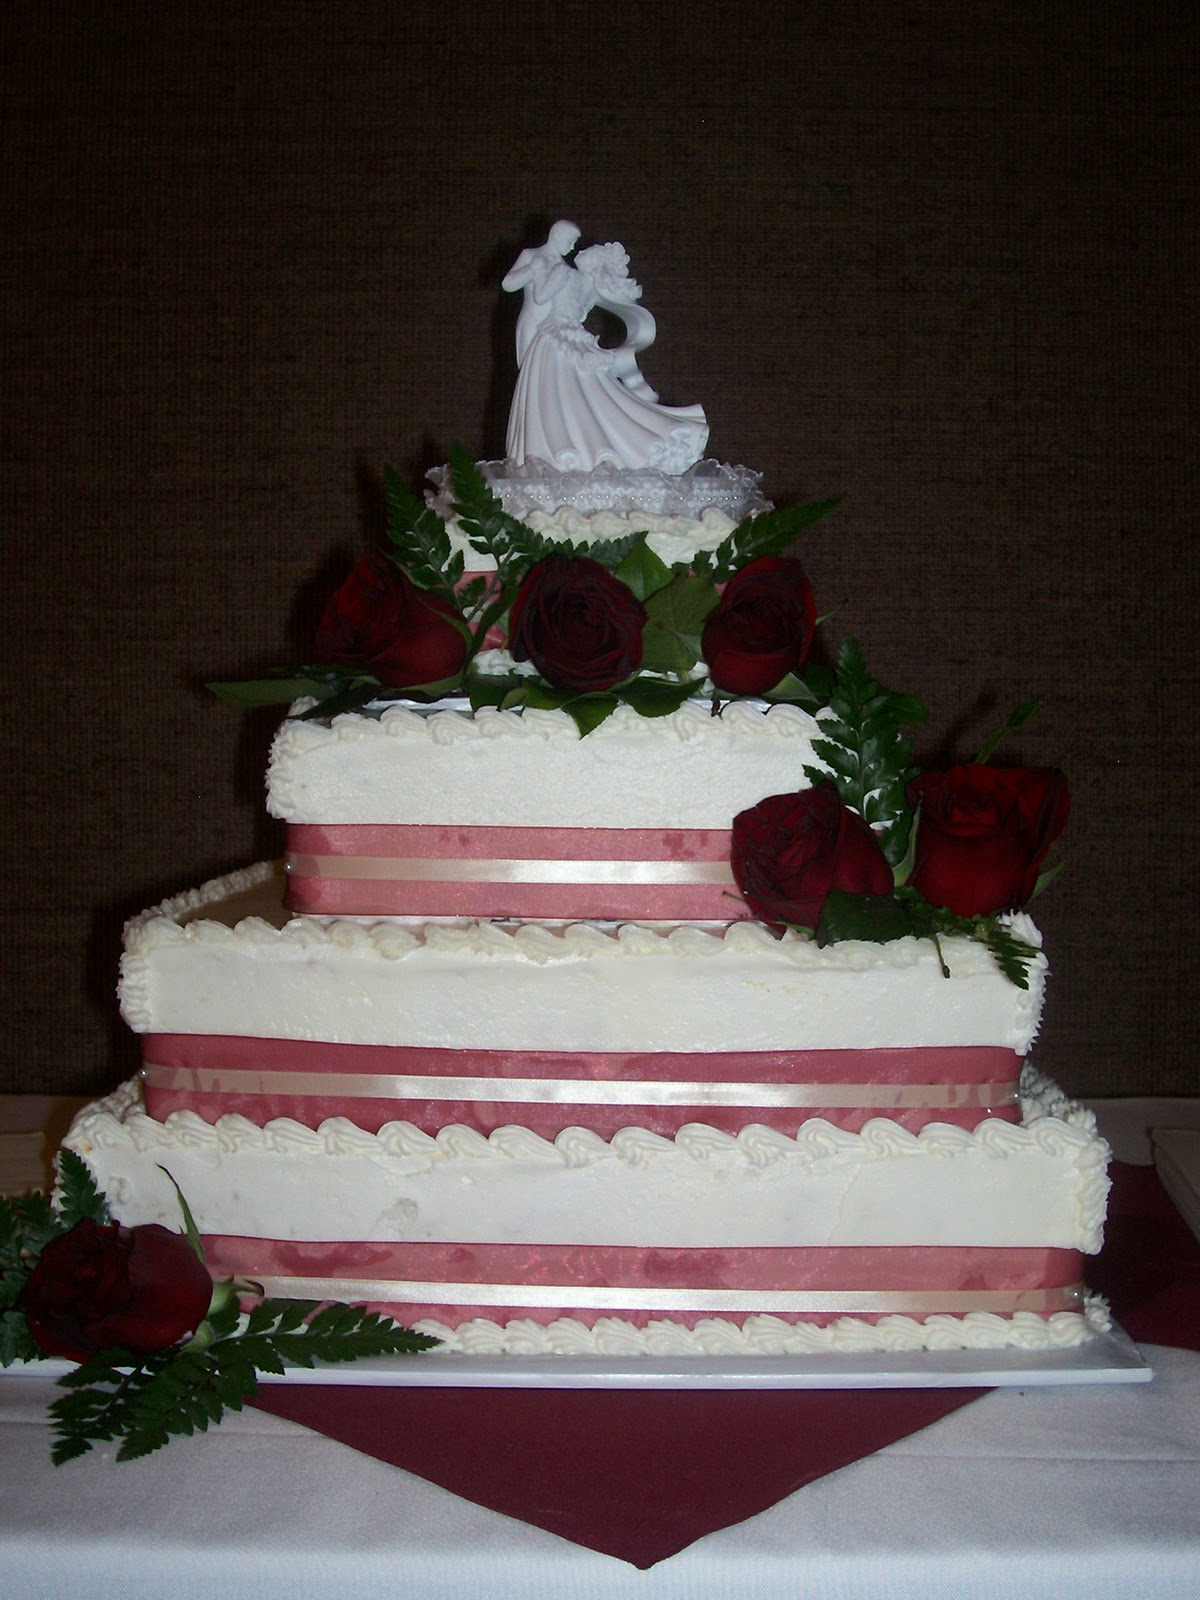 Sisters Sweets Just posted some more cake pictures